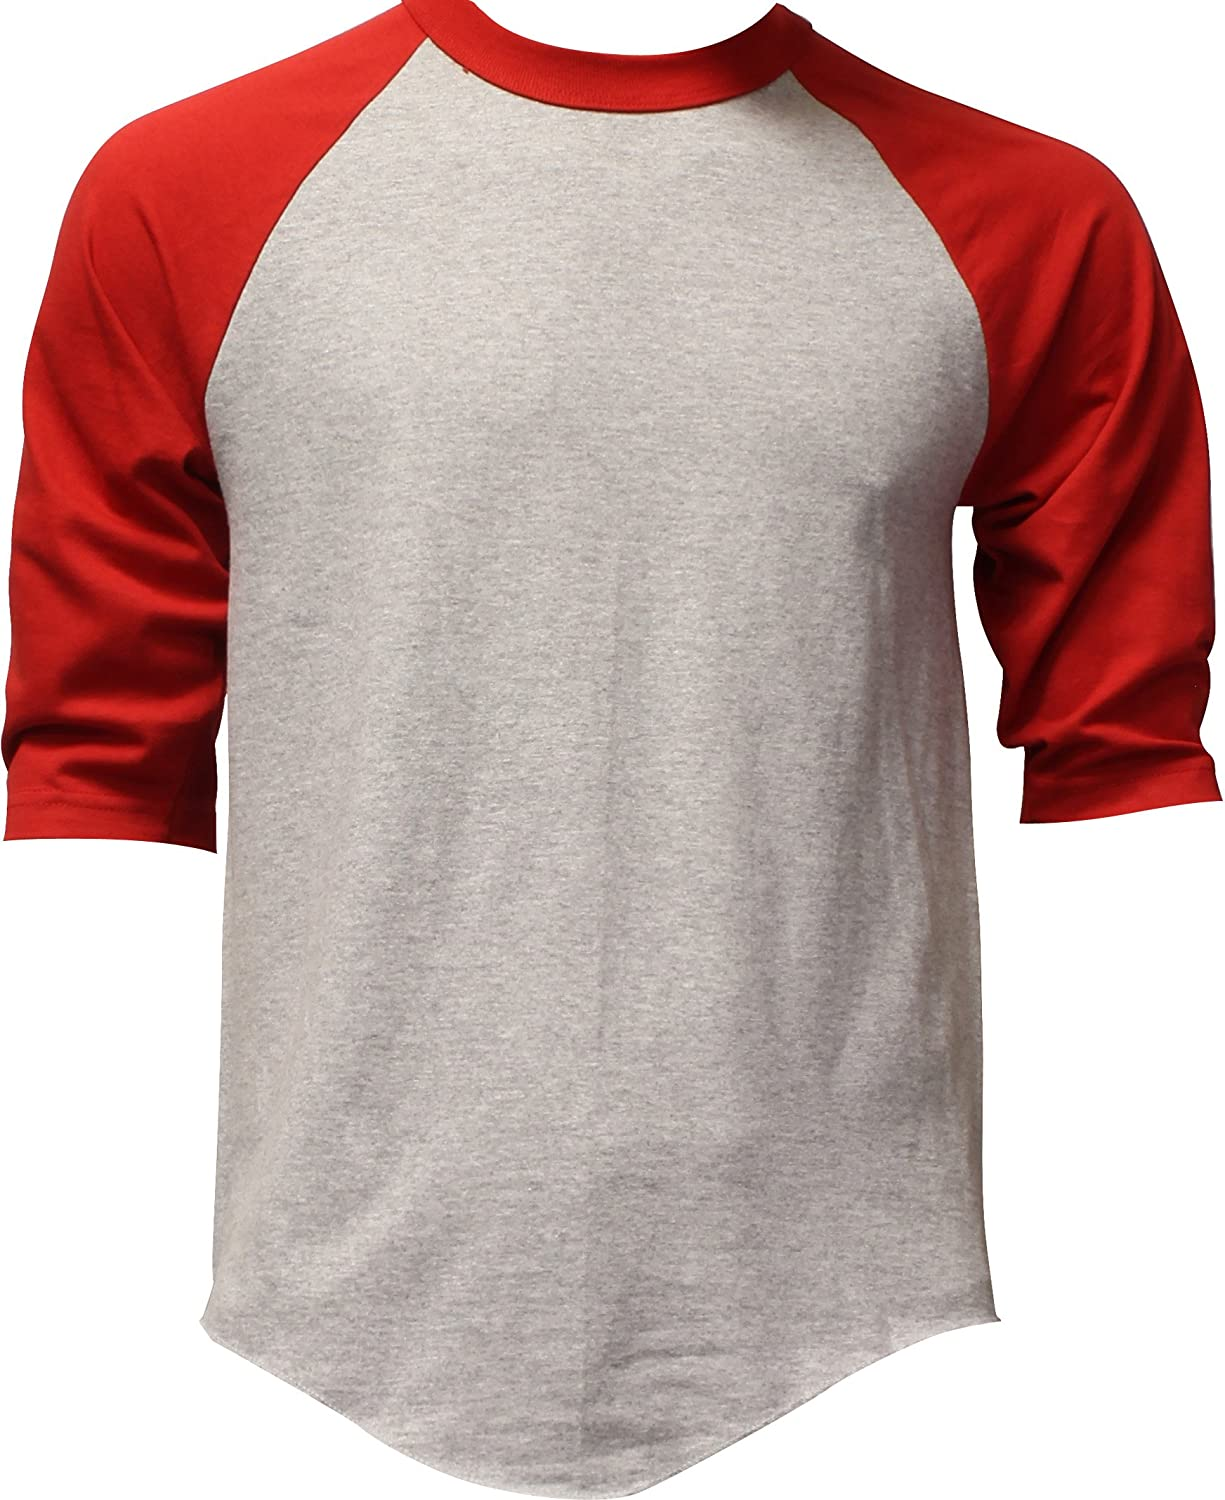 Pro tag 100 cotton 3 4 sleeve raglan baseball shirt in white black - Casual Raglan Mens 3 4 Sleeve Tshirt Baseball Cotton Jersey S 3xl 17 Colors Amazon Com